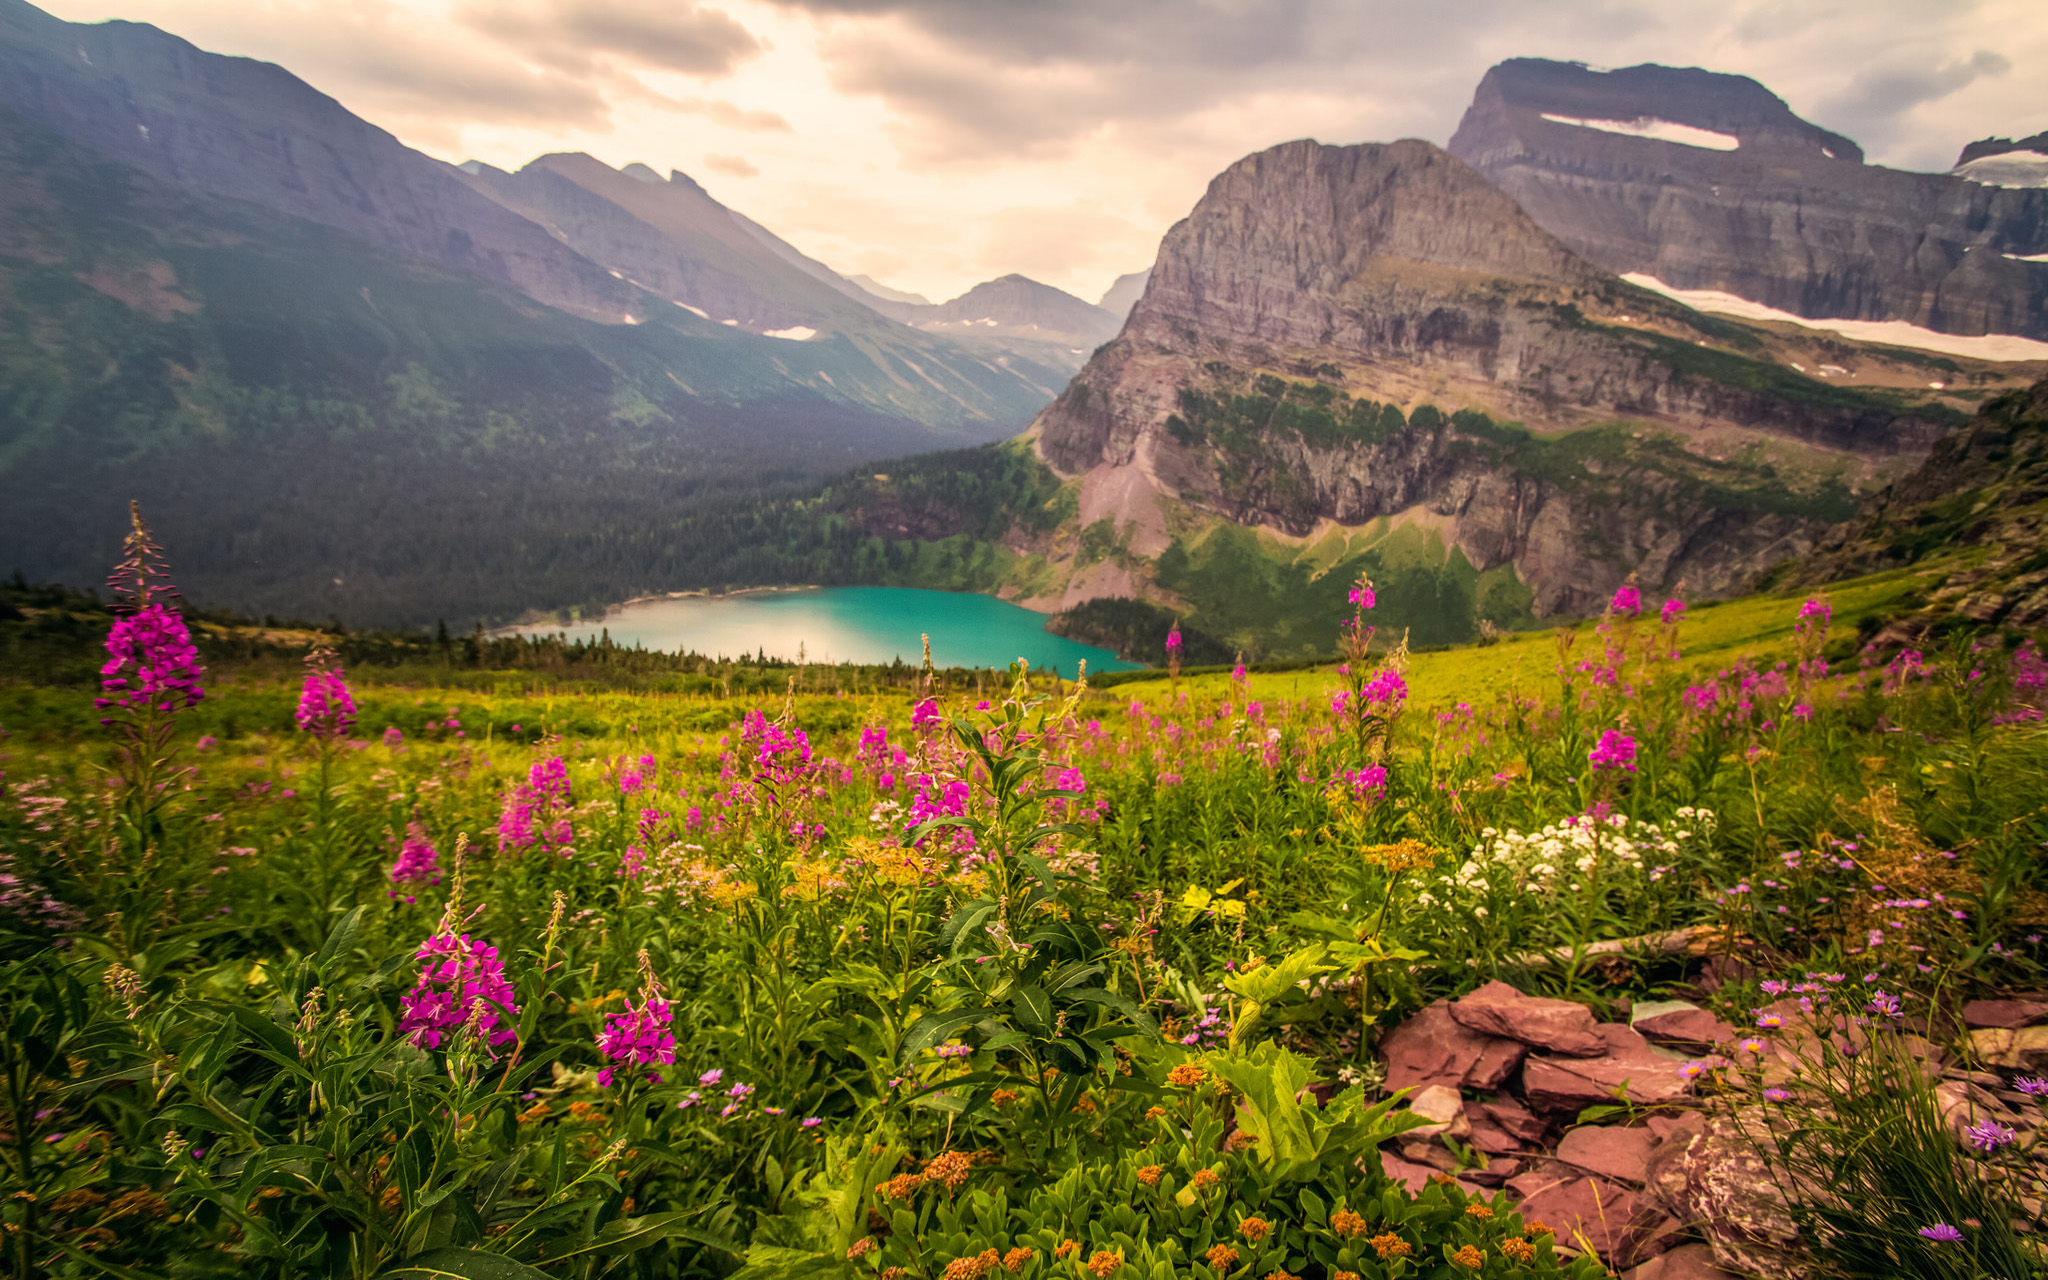 Windows 10 Wallpapers Hd Fall Glacier National Park Usa Awesome Place Rocky Mountain